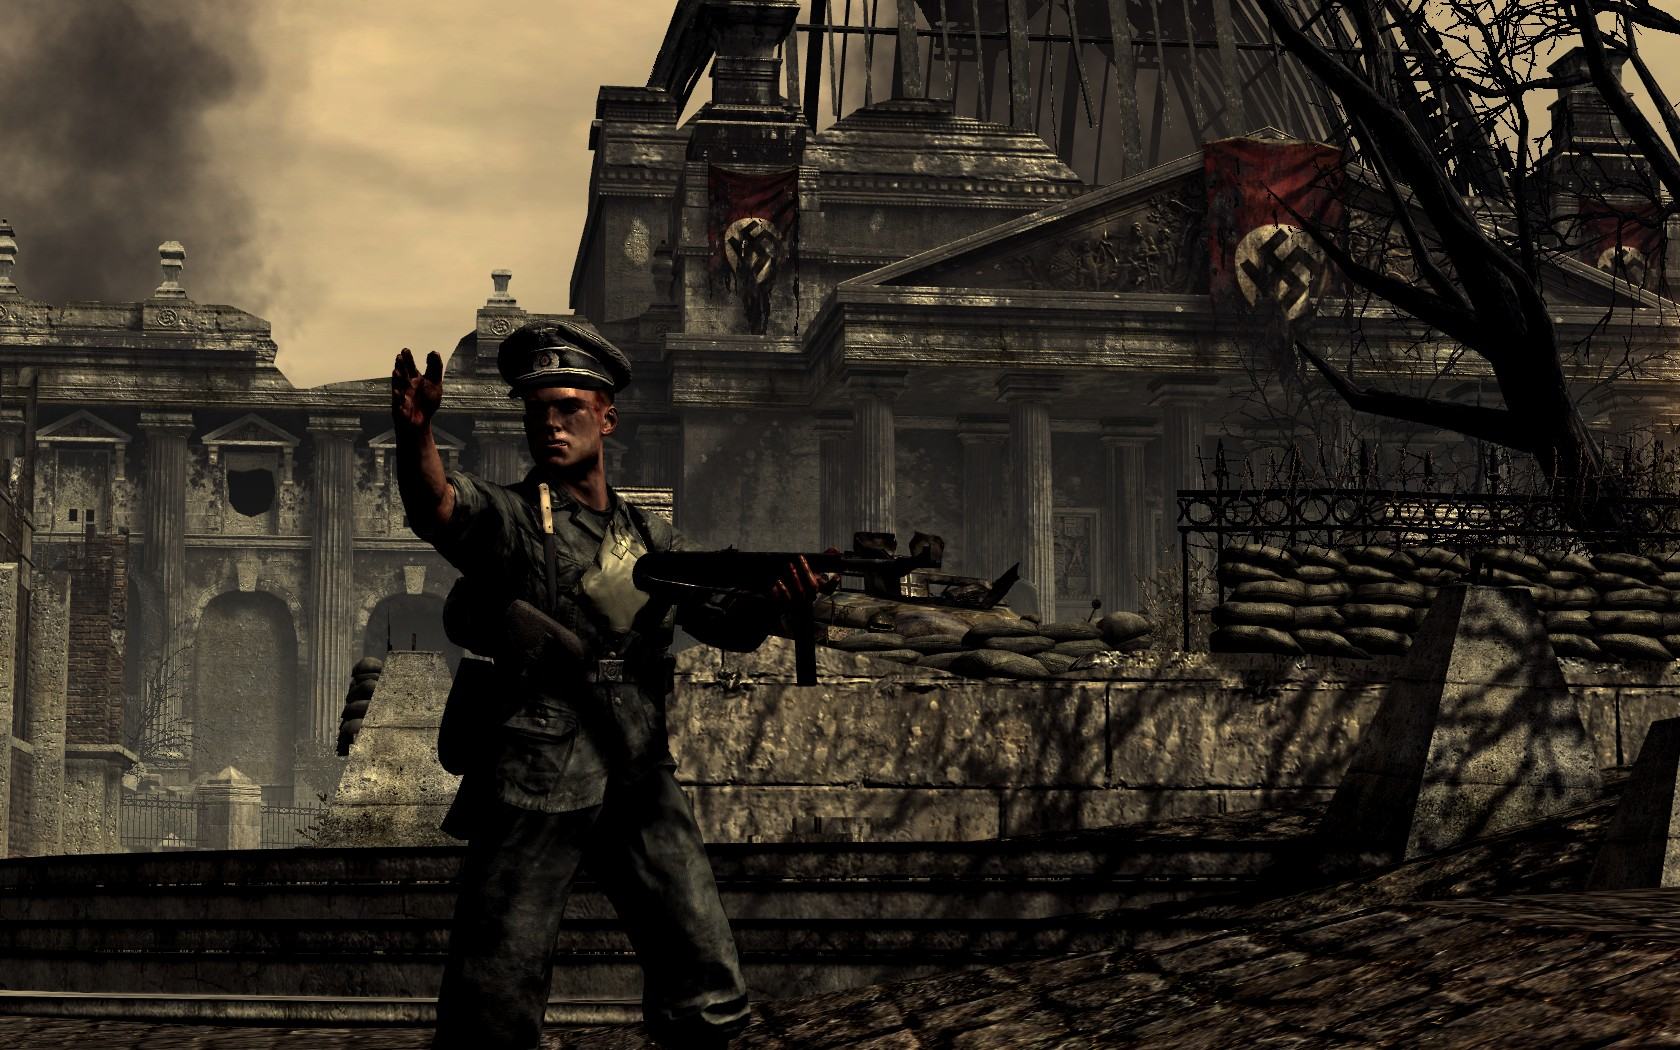 world at war Call of duty world at war free download returns the call of duty franchise to world war 2, with fun fighting scenes - get the direct full download link.